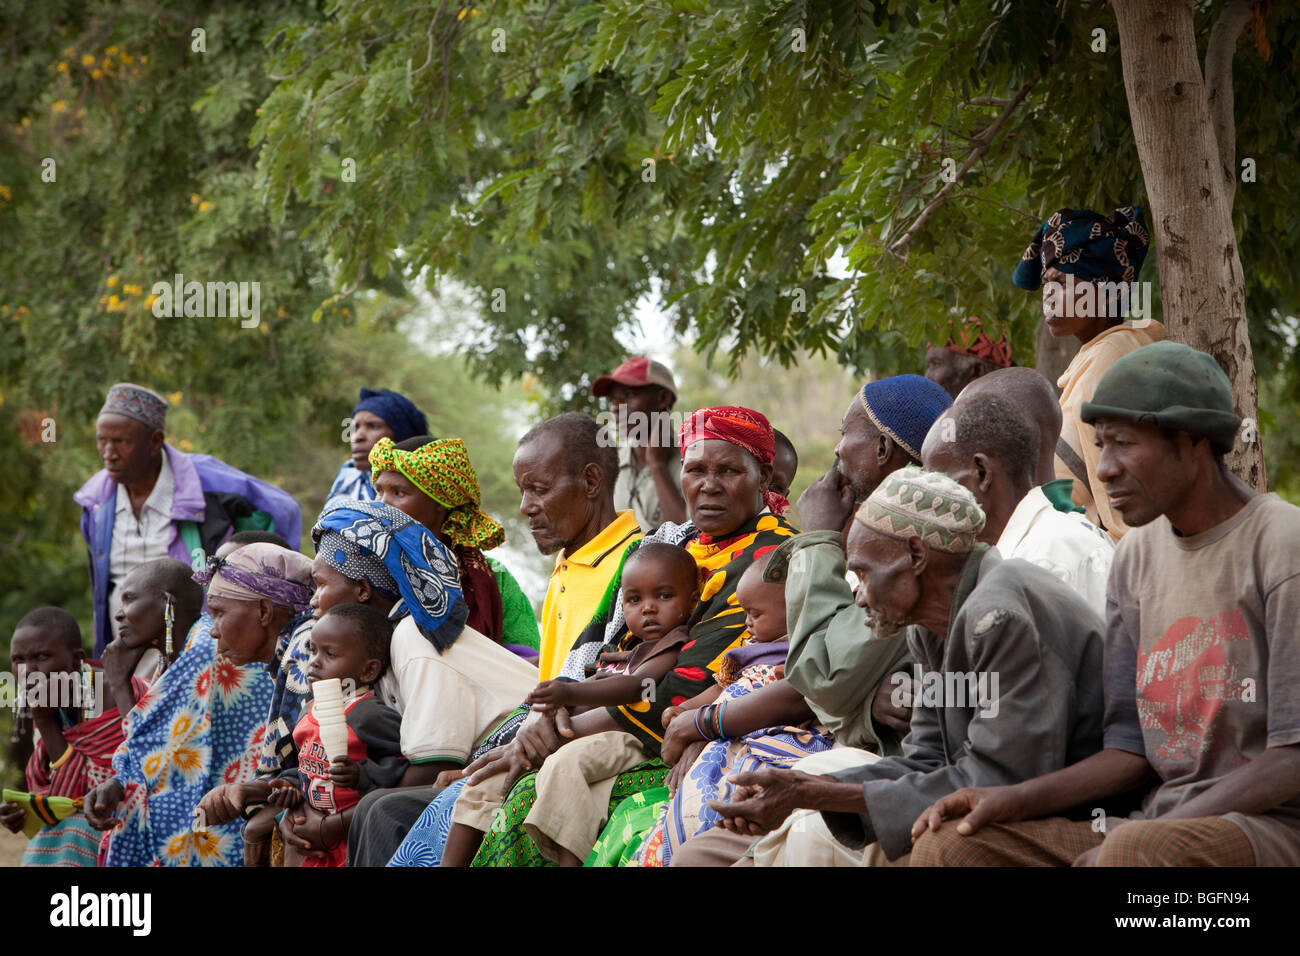 Villagers wait outside a medical dispensary in Tanzania: Manyara Region, Simanjiro District, Kilombero Village. - Stock Image